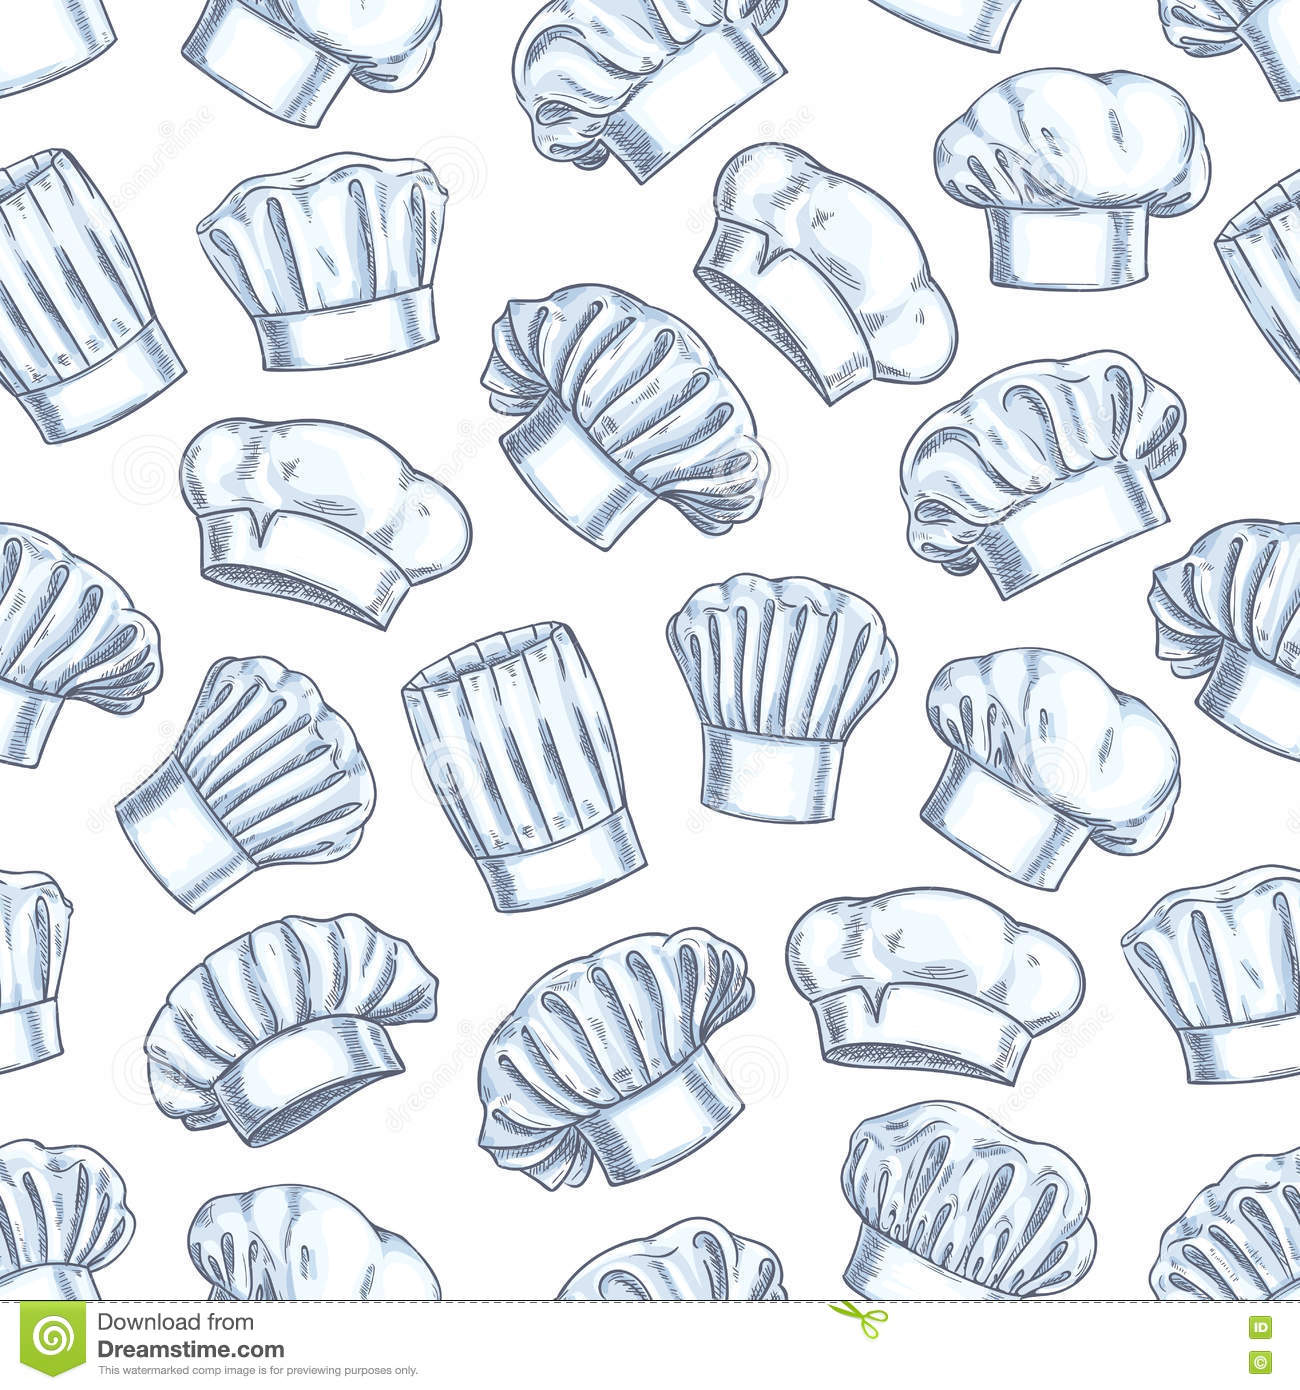 00fcc6a279c Chef toques seamless background. Wallpaper with vector pattern icons of  restaurant cook caps. Pencil sketch decoration for restaurant